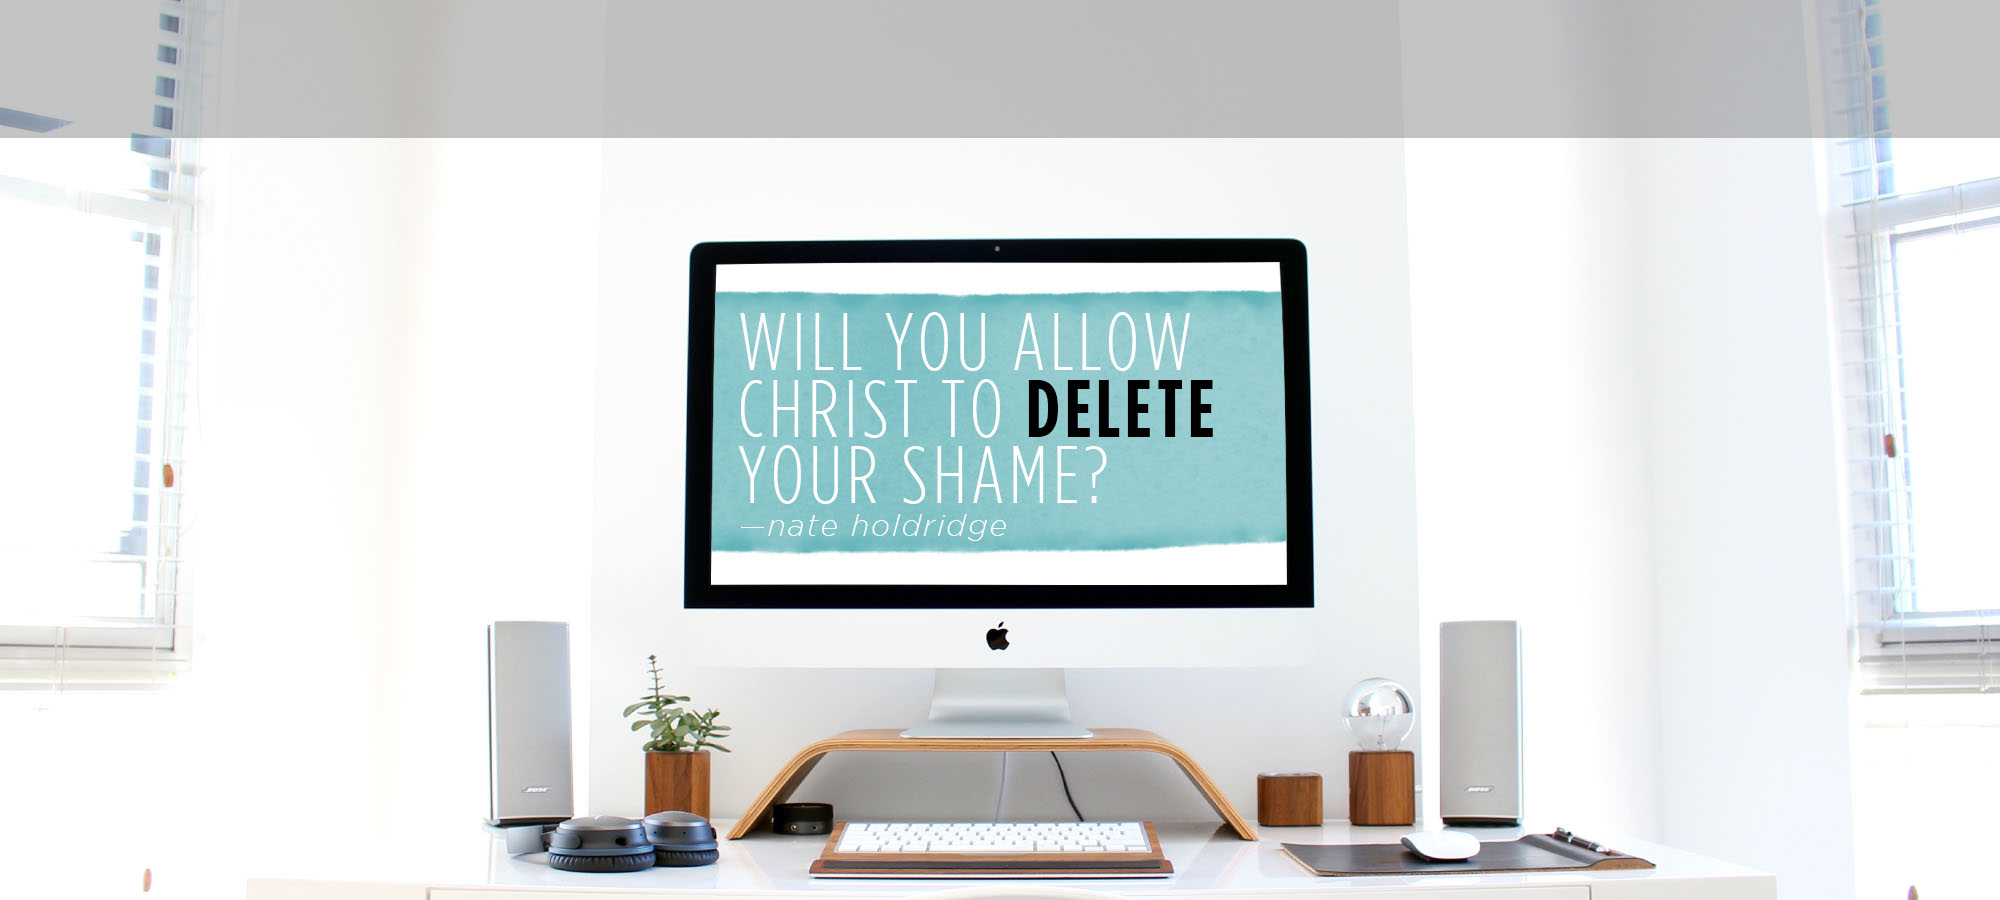 Will You Allow Christ to Delete Your Shame?